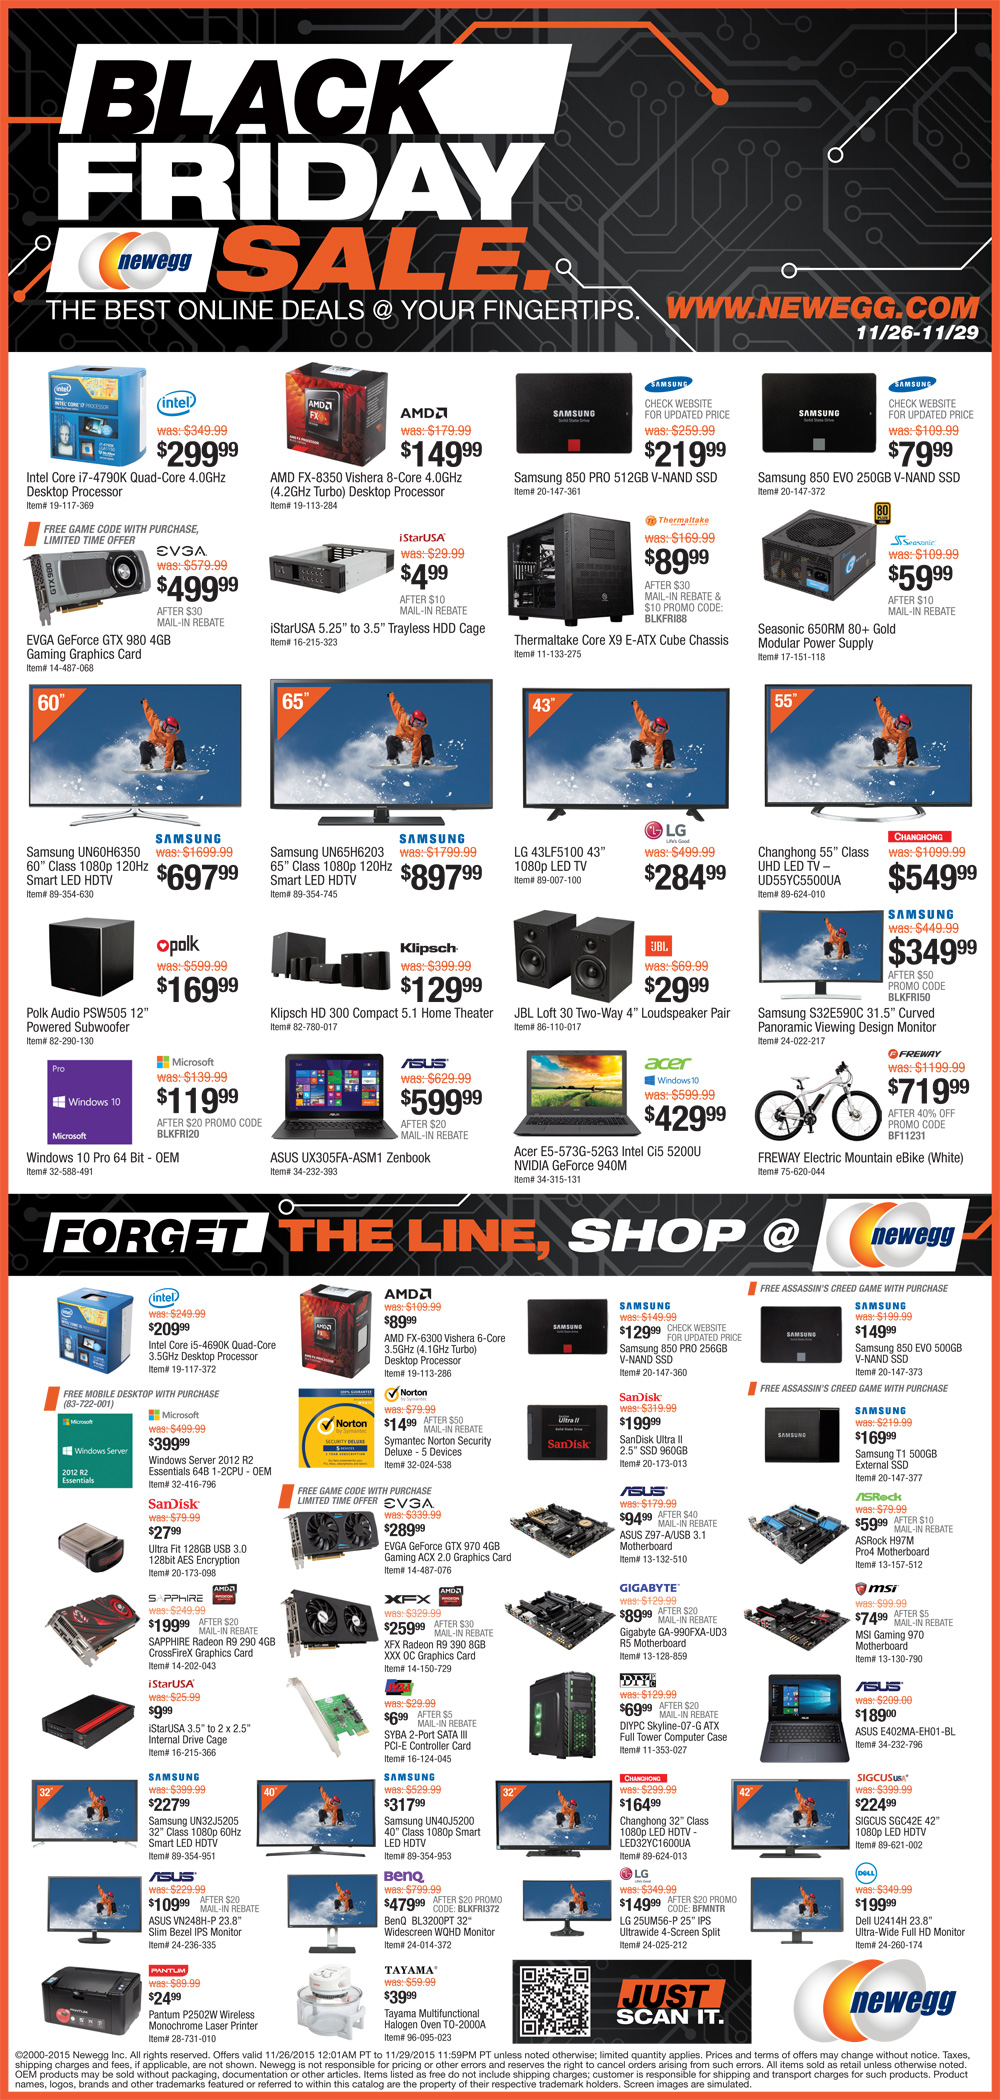 Gracious More Black Friday Newegg Dota Item Search Newegg Cyber Monday 2017 Ad Cyber Monday 2017 Canada Newegg Fastshipping Newegg Canada Offers Prices On Computer Digital dpreview Newegg Cyber Monday 2017